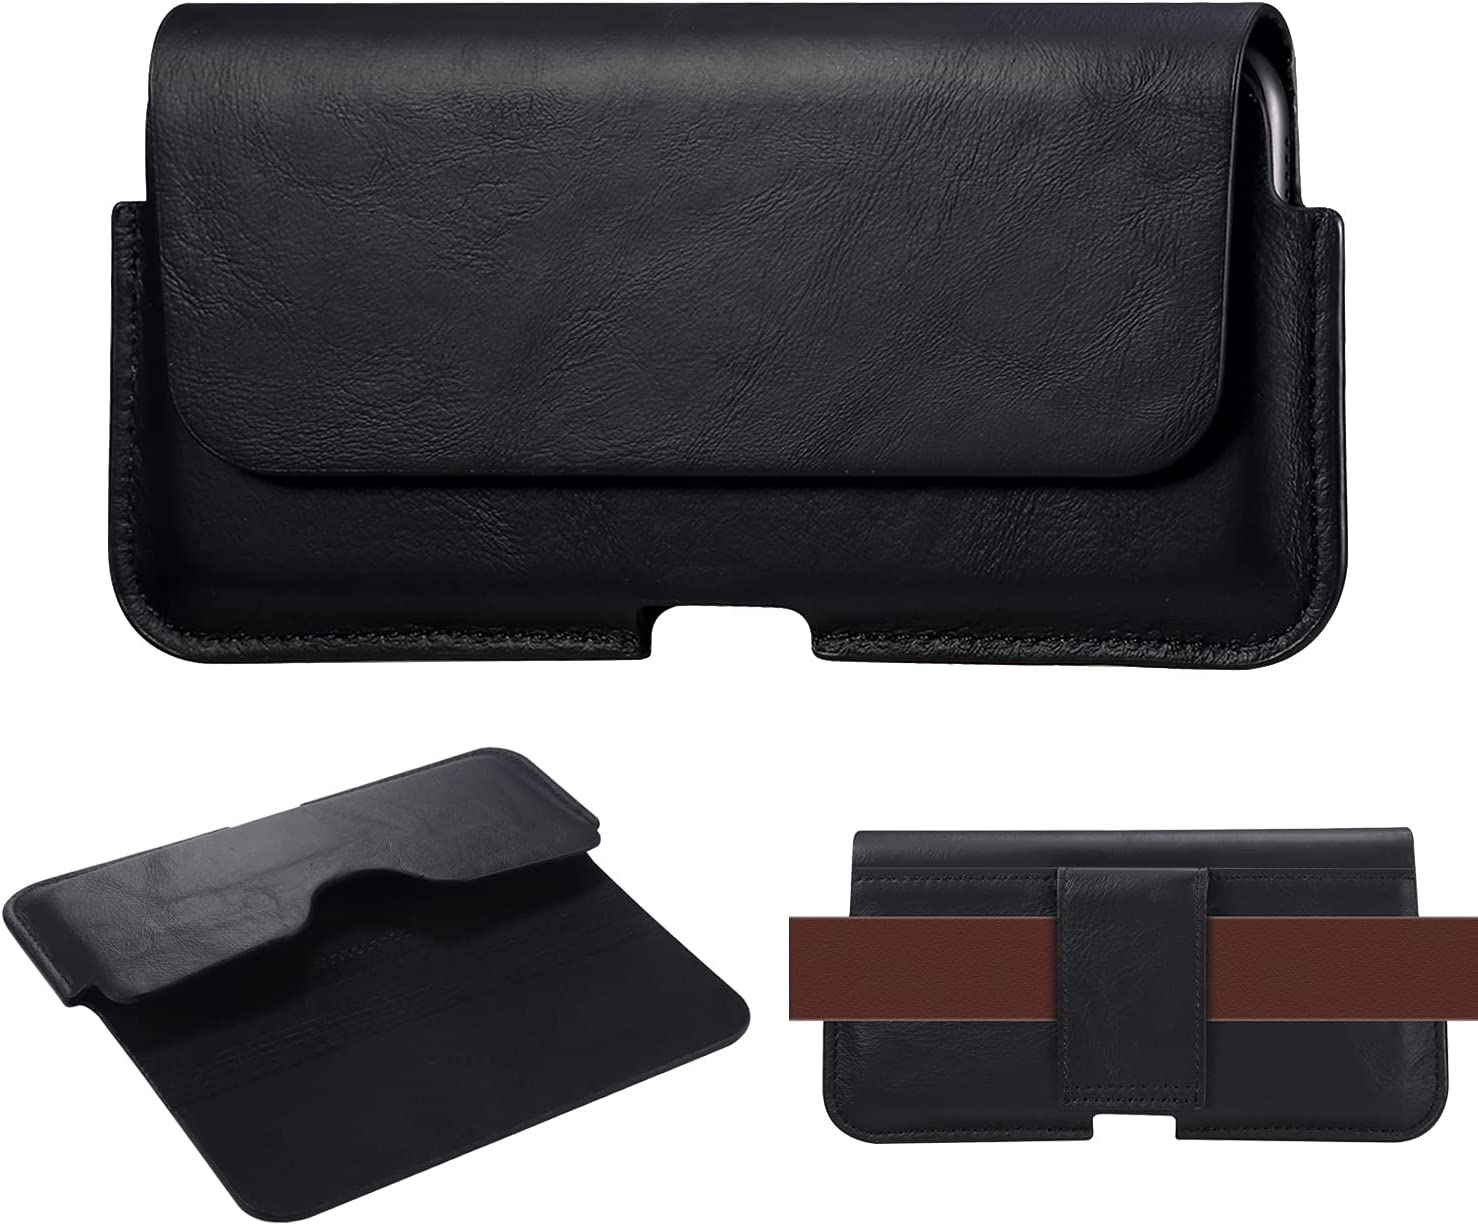 Genuine Leather Belt Holster for Xiaomi Max3,Max2,Cell Phone Holster with Belt Loop Pouch Cases for Huawei mate40lite,Mate 20X,Enjoy max,for Men's case【Magnetic Closure】